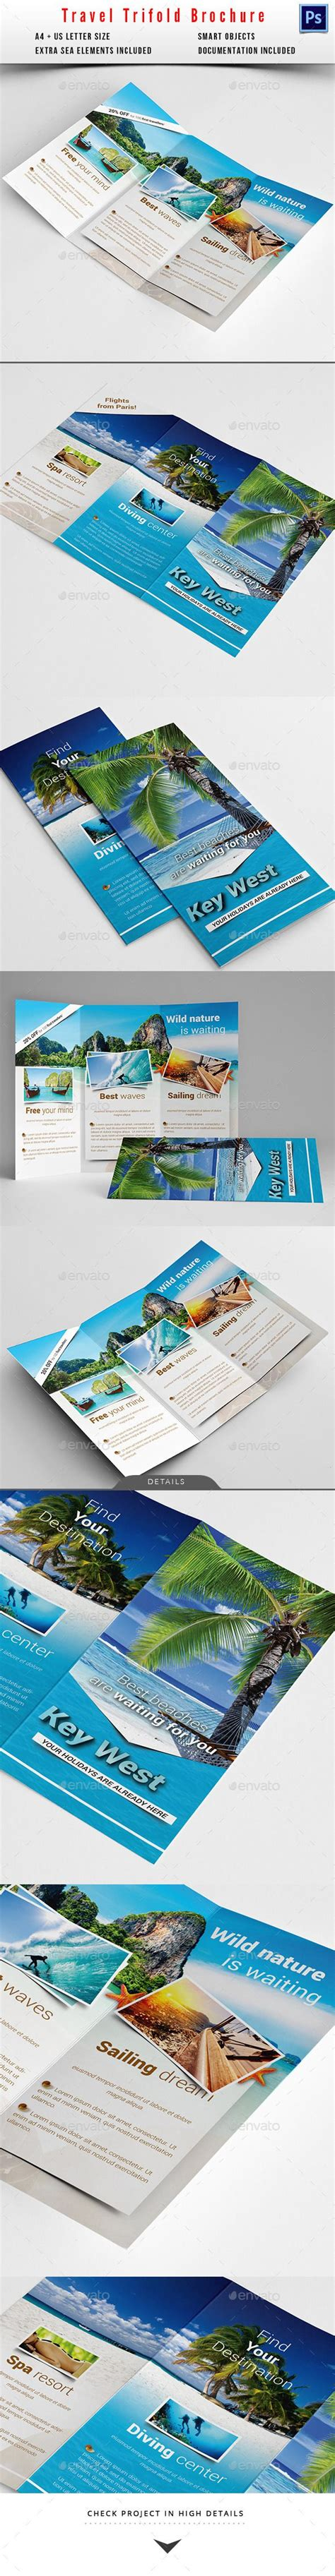 Trifold Template Album Ideas by 25 Best Ideas About Travel Brochure Template On Pinterest